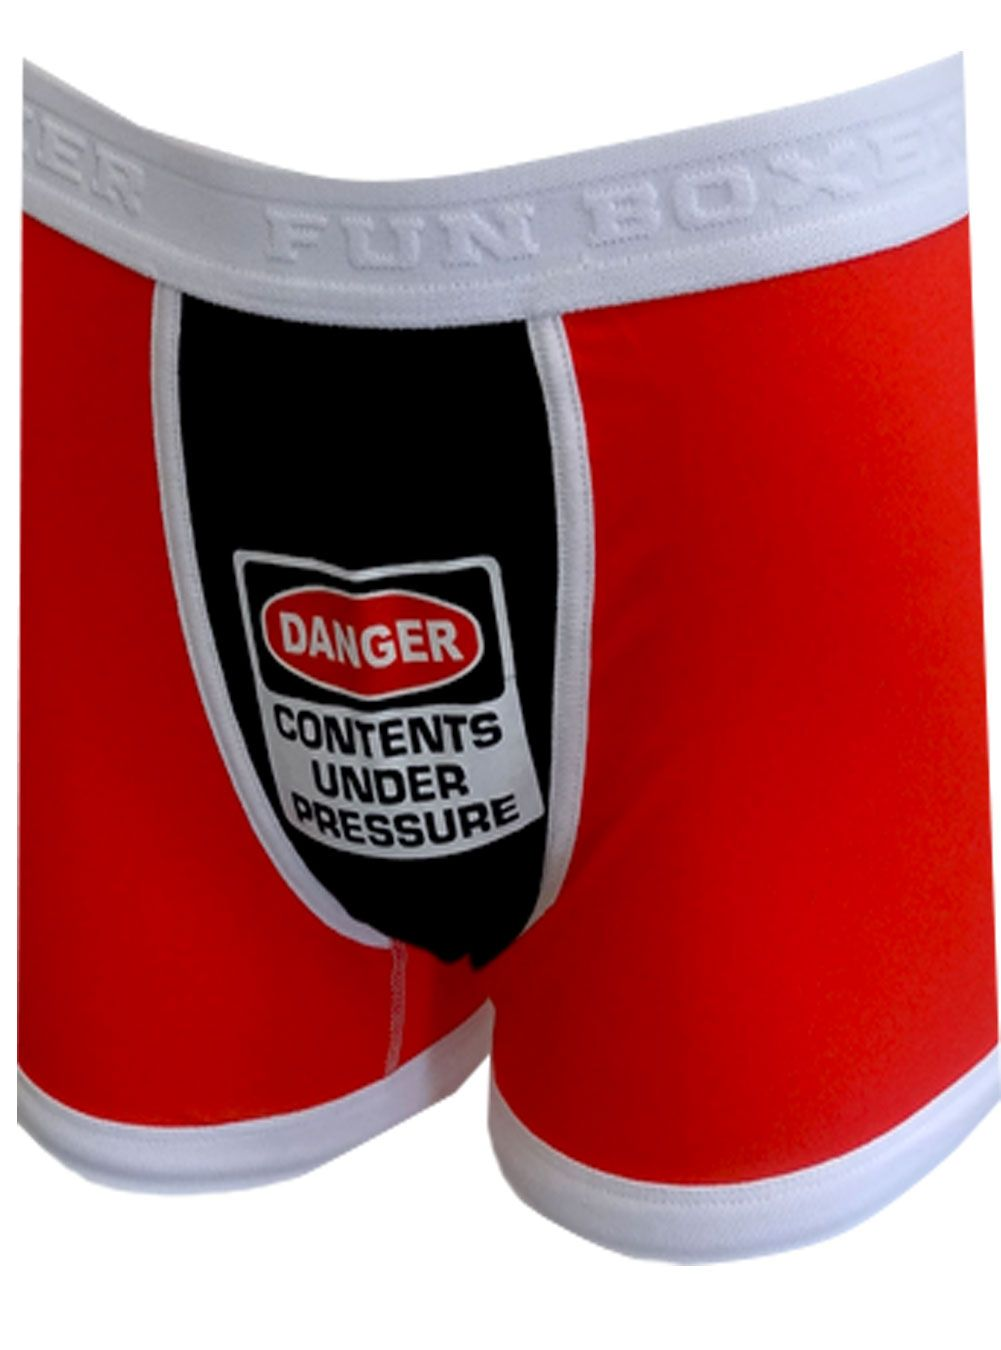 87d4549e6d6c9 Danger Contents Under Pressure Boxer Briefs | Men's Fun Undies ...